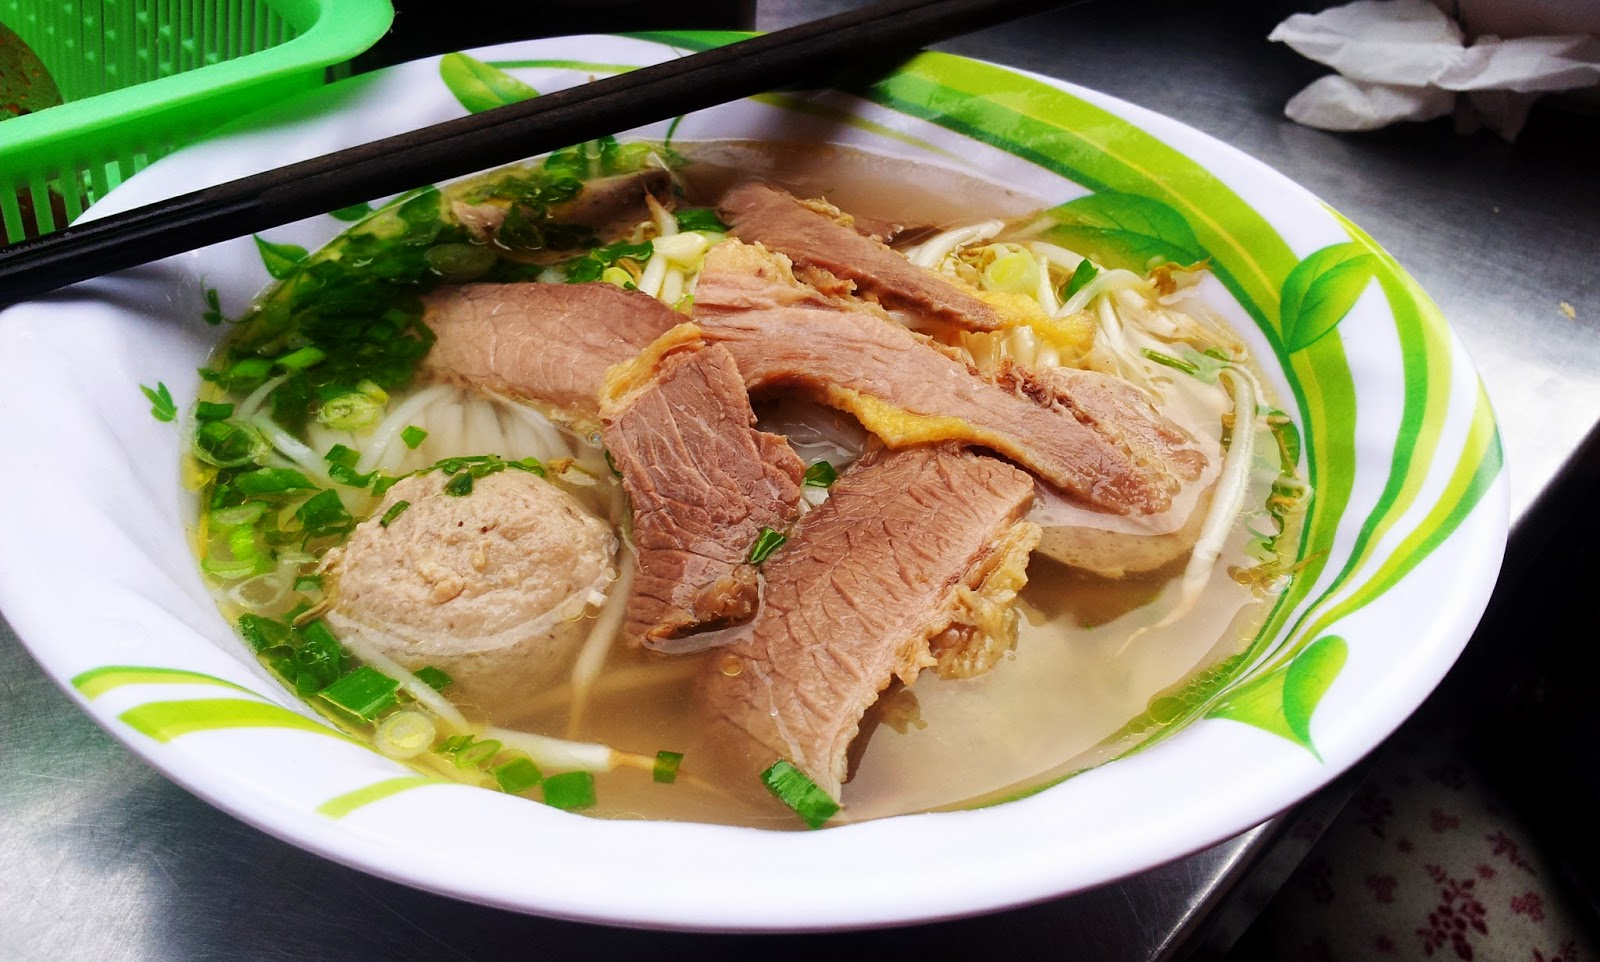 Muslim Travel: 5 Places for Halal Food in Ho Chi Minh City